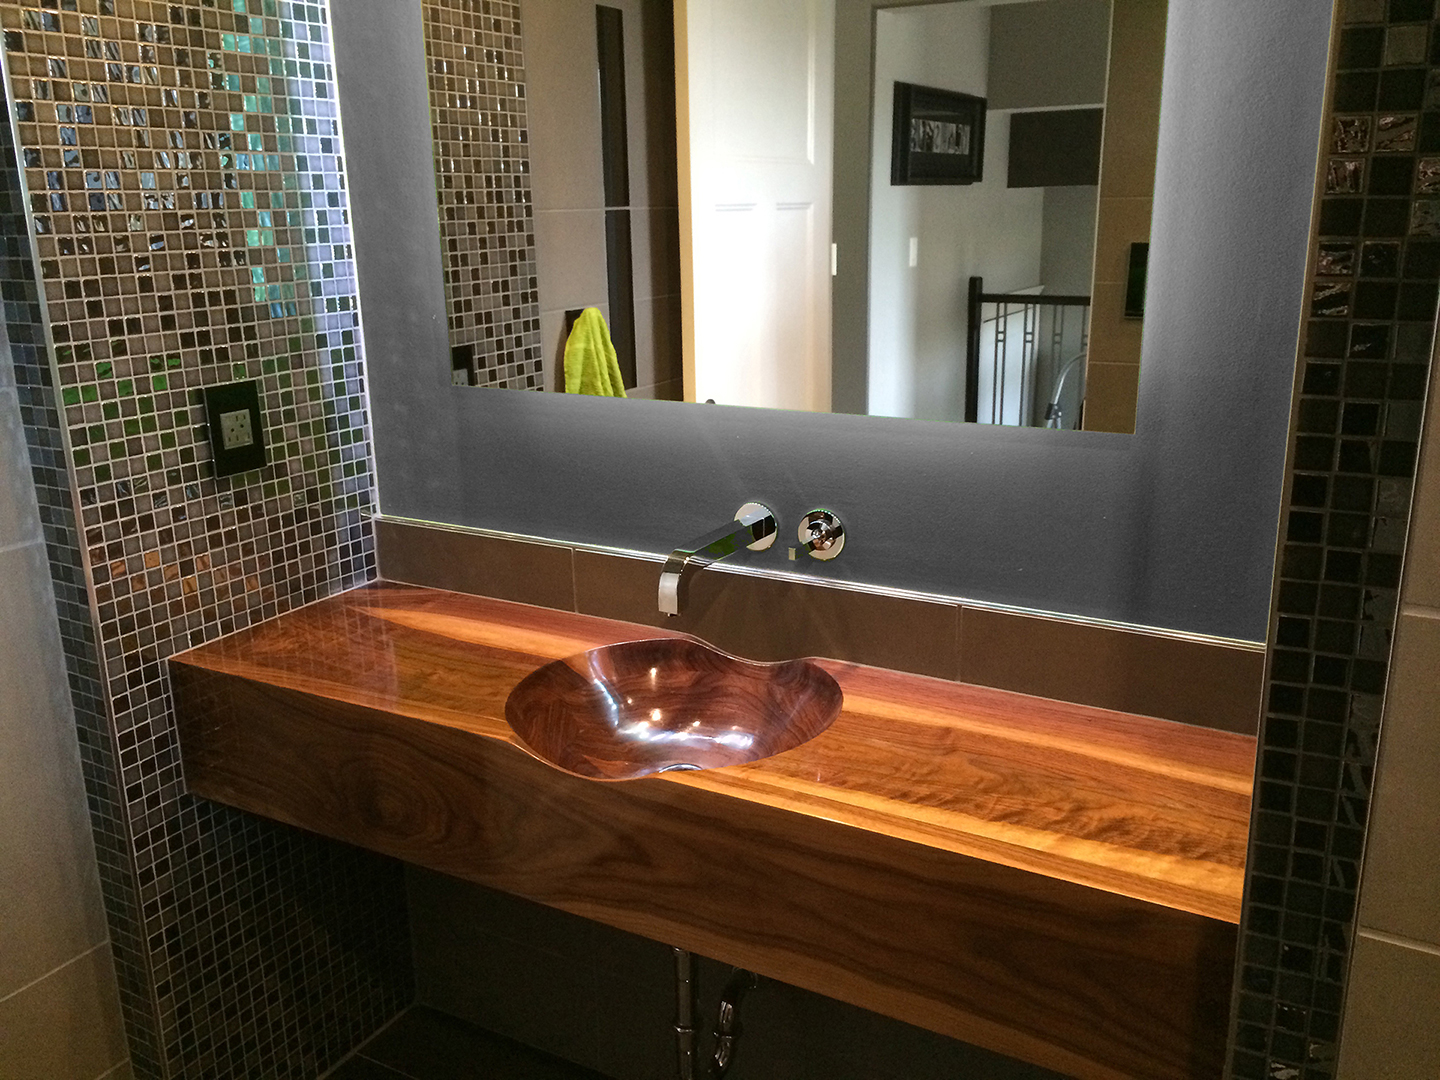 Bathroom Sinks Vancouver Bc mapleart: custom wood furniture, vancouver, bcwalnut bathroom sink